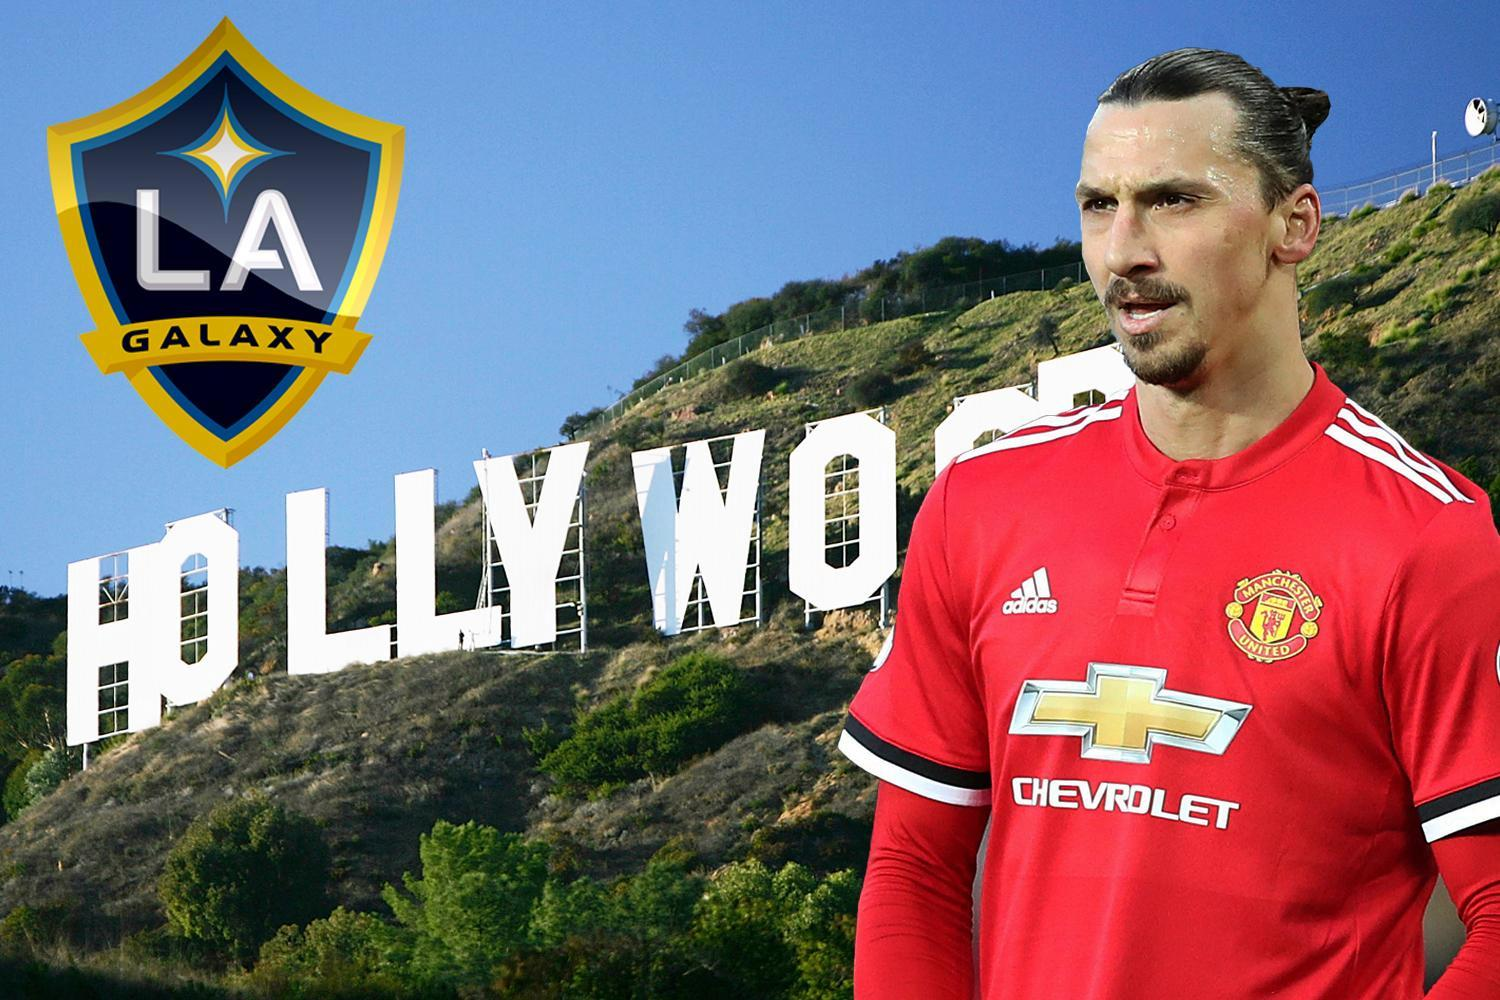 Zlatan Ibrahimovic quits Manchester United and joins LA Galaxy in stunning mid-season move